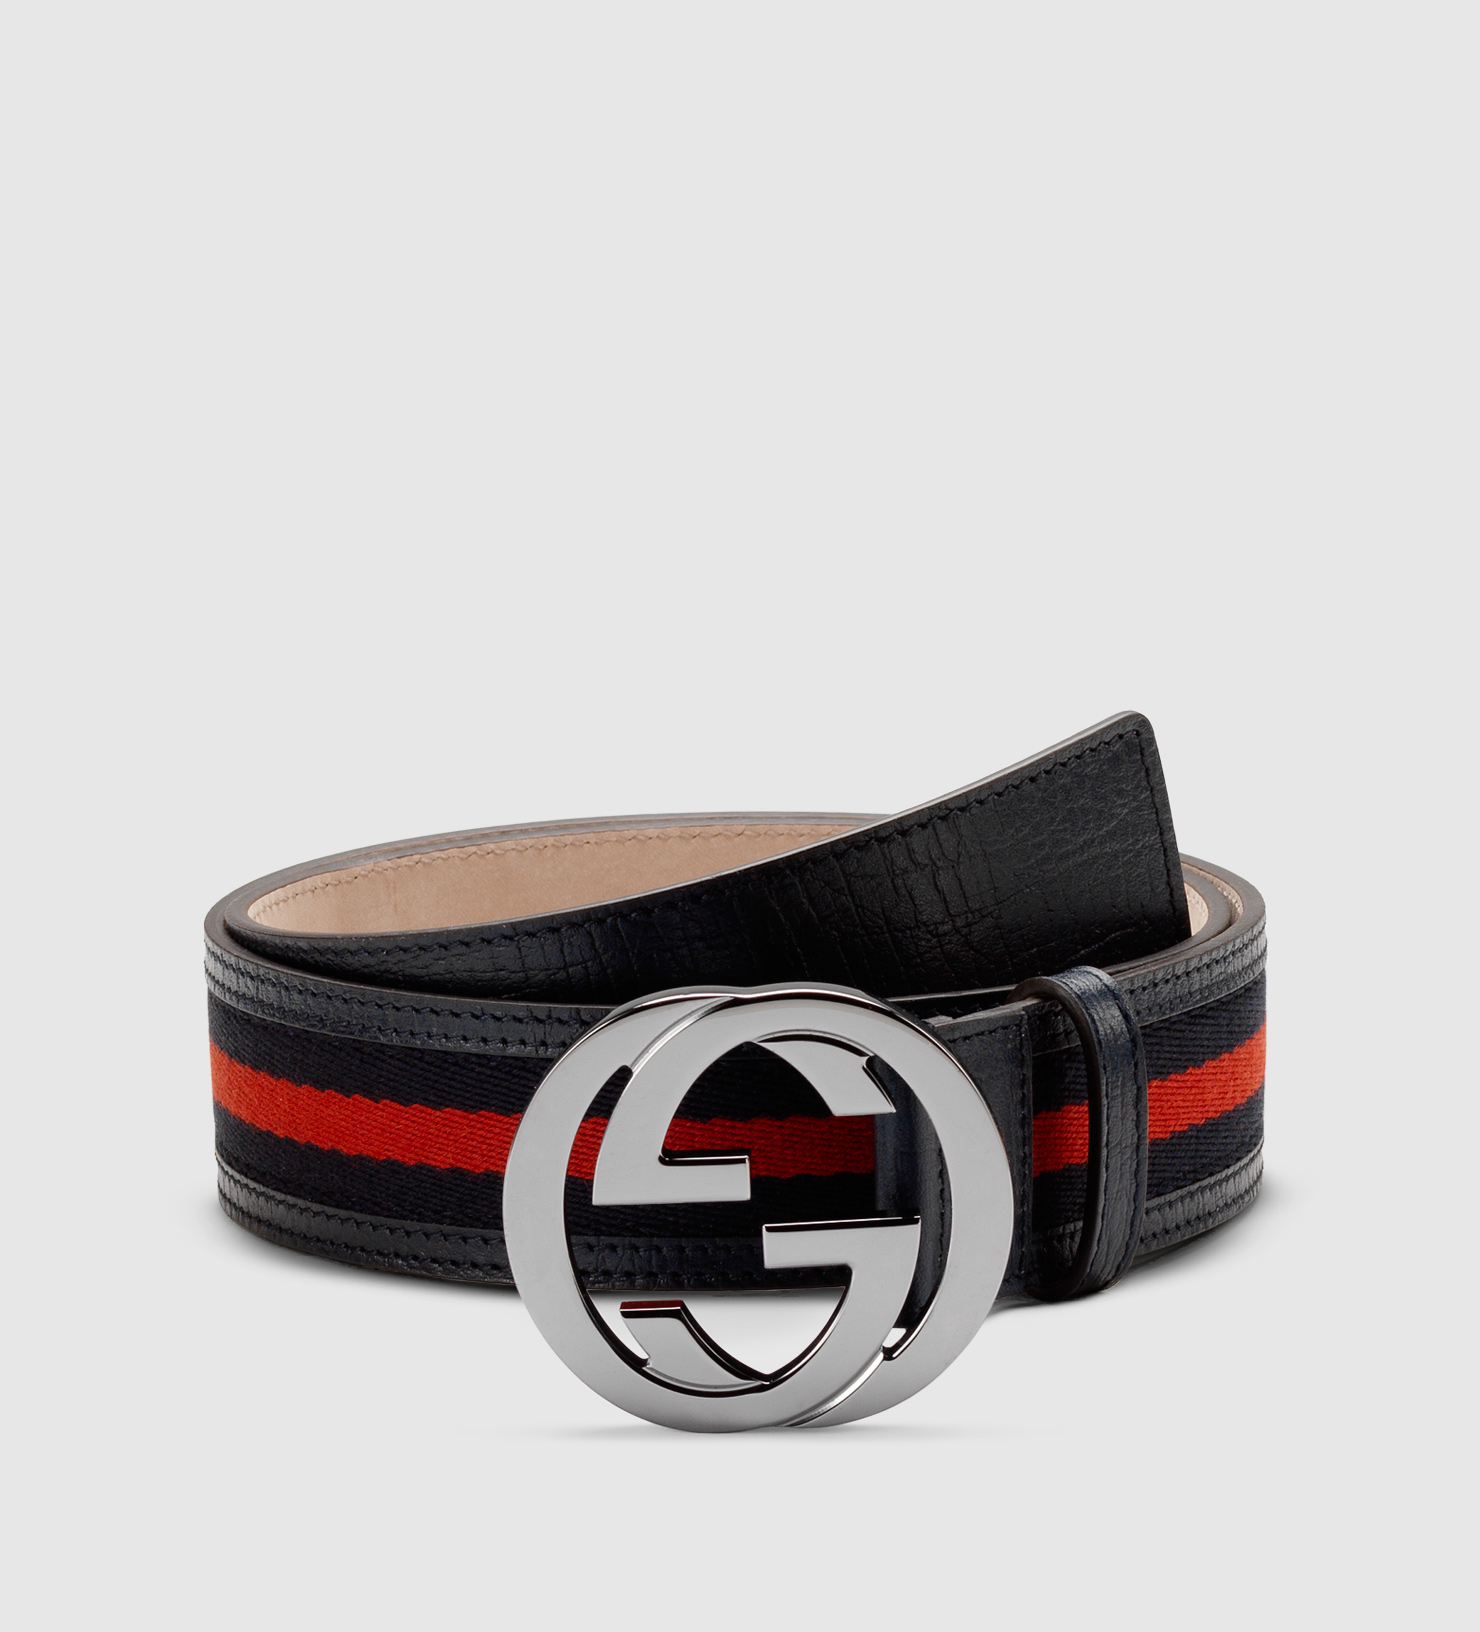 ae8481375 Gucci Signature Web Belt With Interlocking G Buckle in Black for Men ...